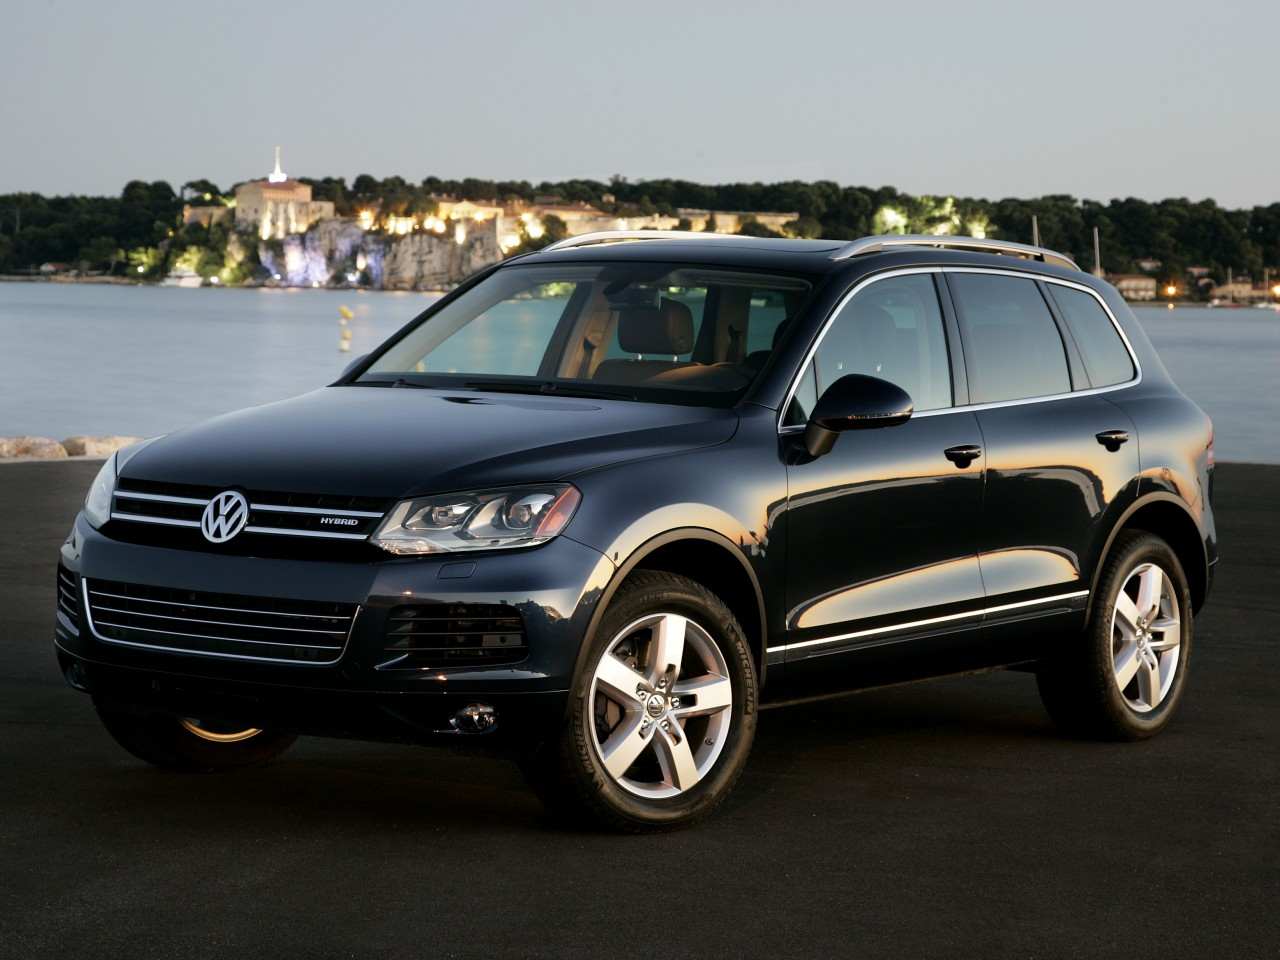 2011 volkswagen touareg hybrid motor desktop. Black Bedroom Furniture Sets. Home Design Ideas